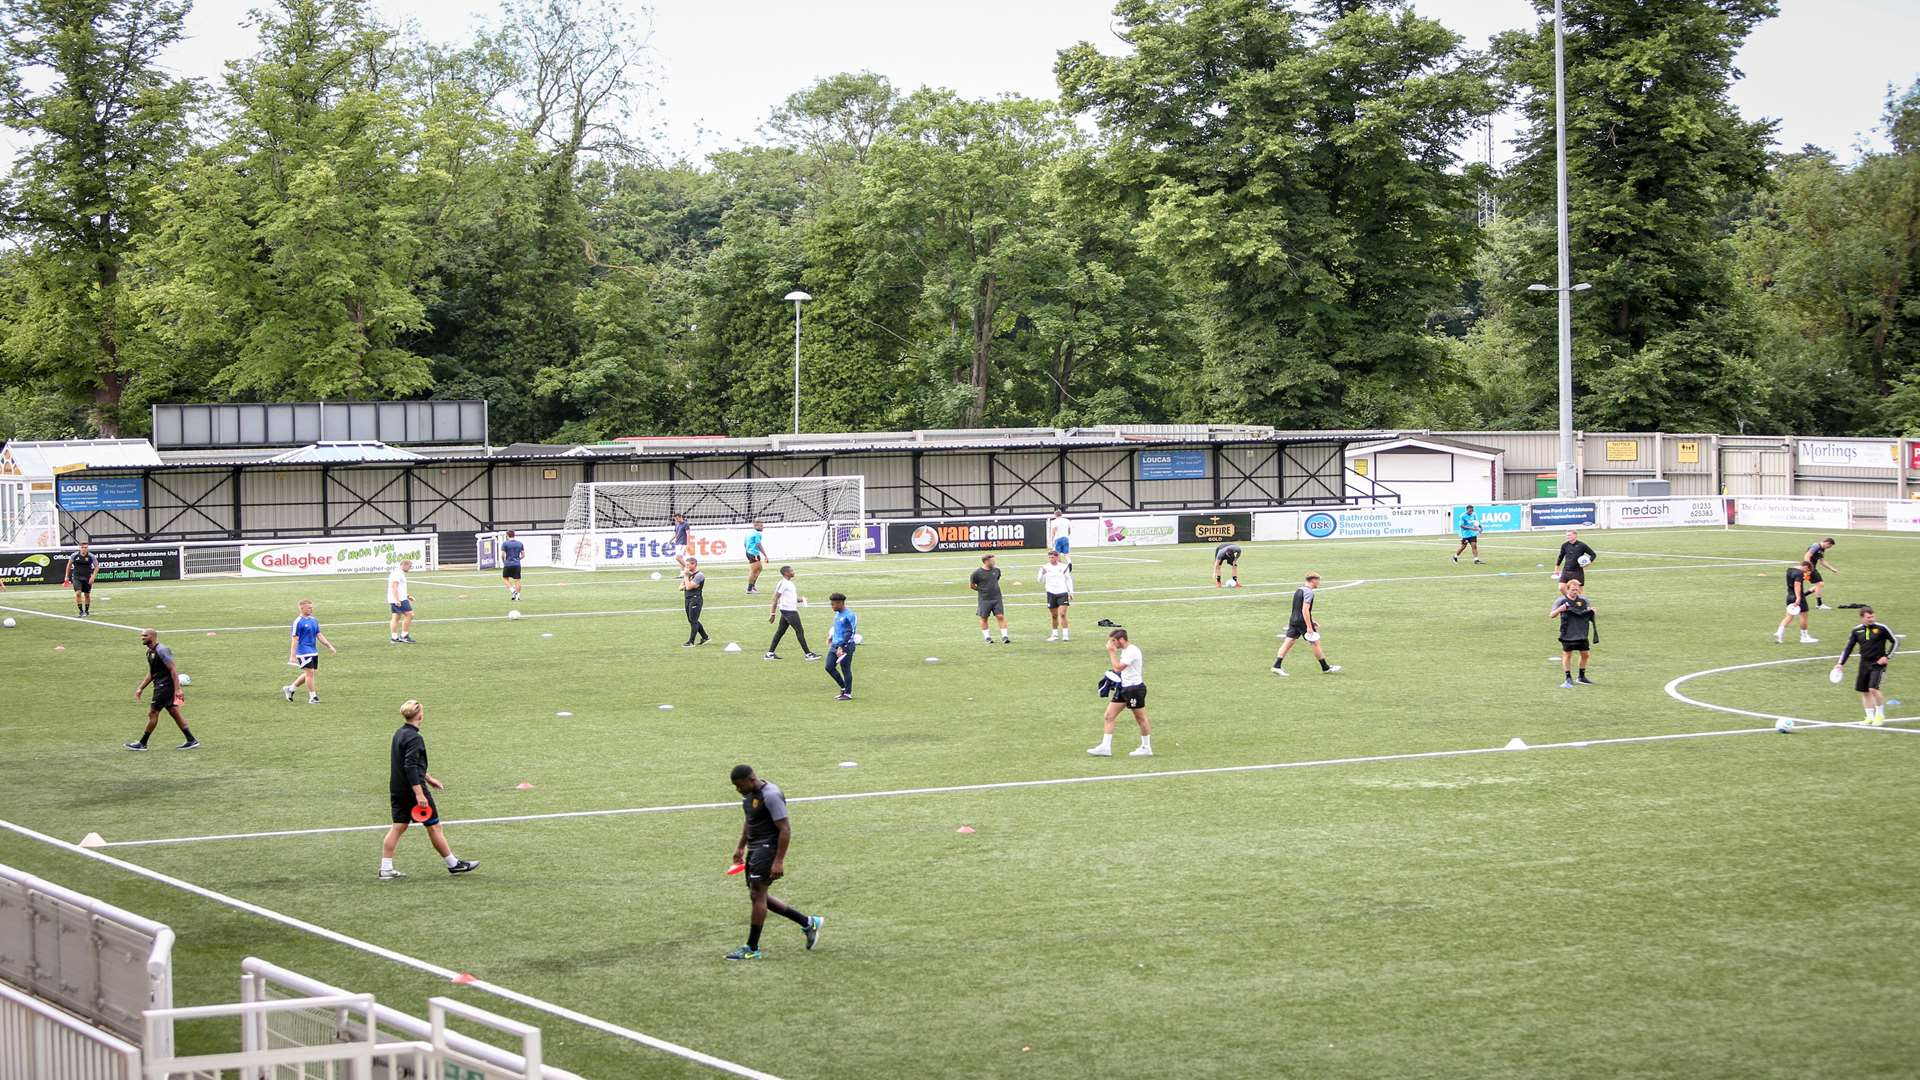 Maidstone United plans to expand the stadium